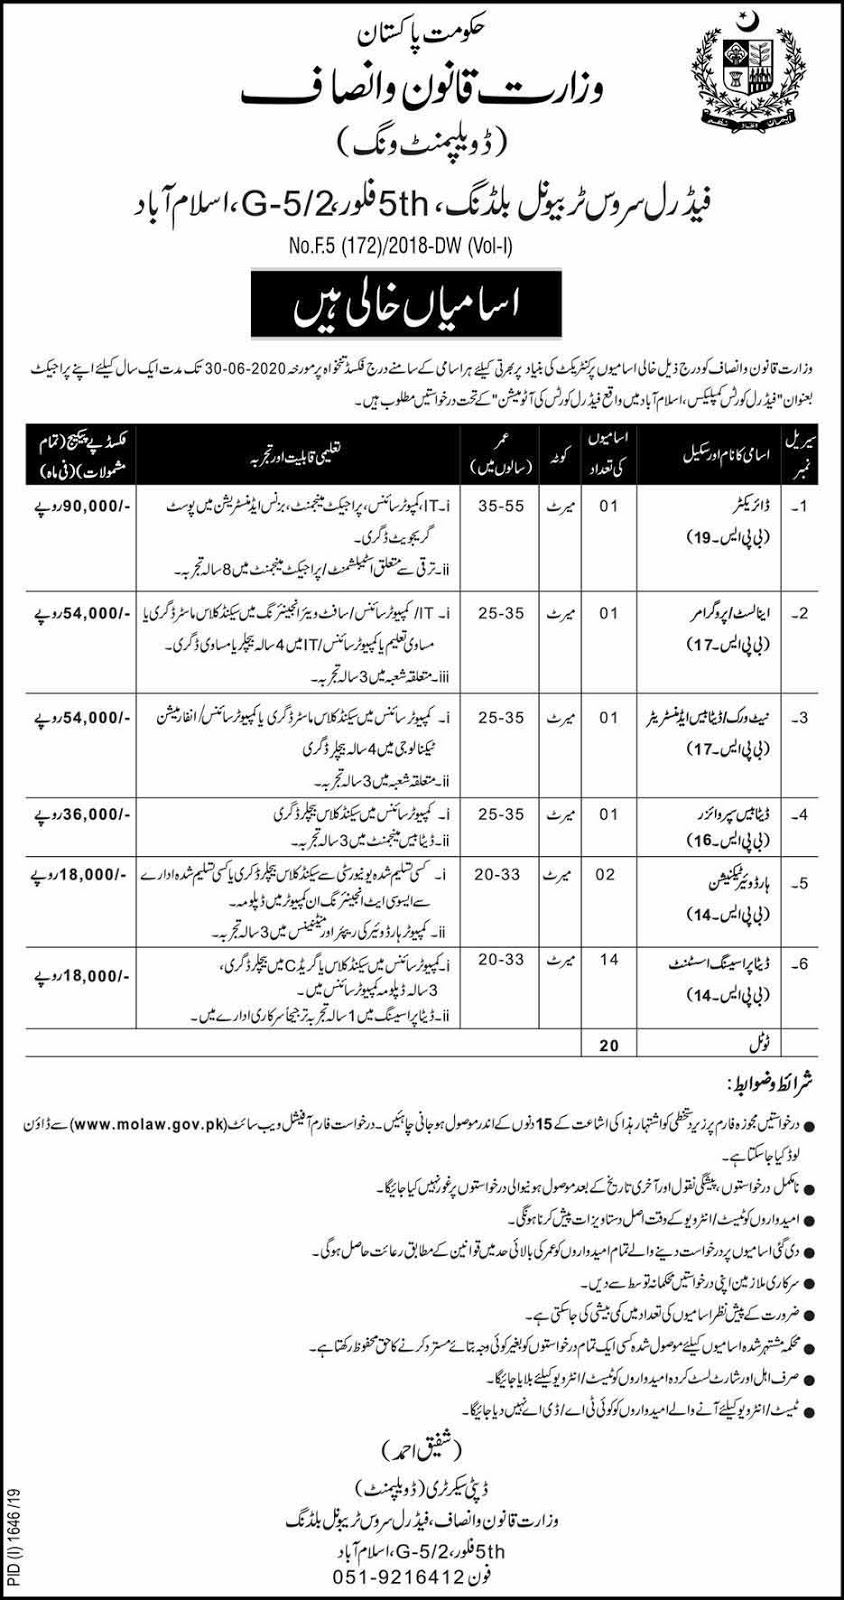 Jobs in Ministry of Law and Justice Govt of Pakistan 2019